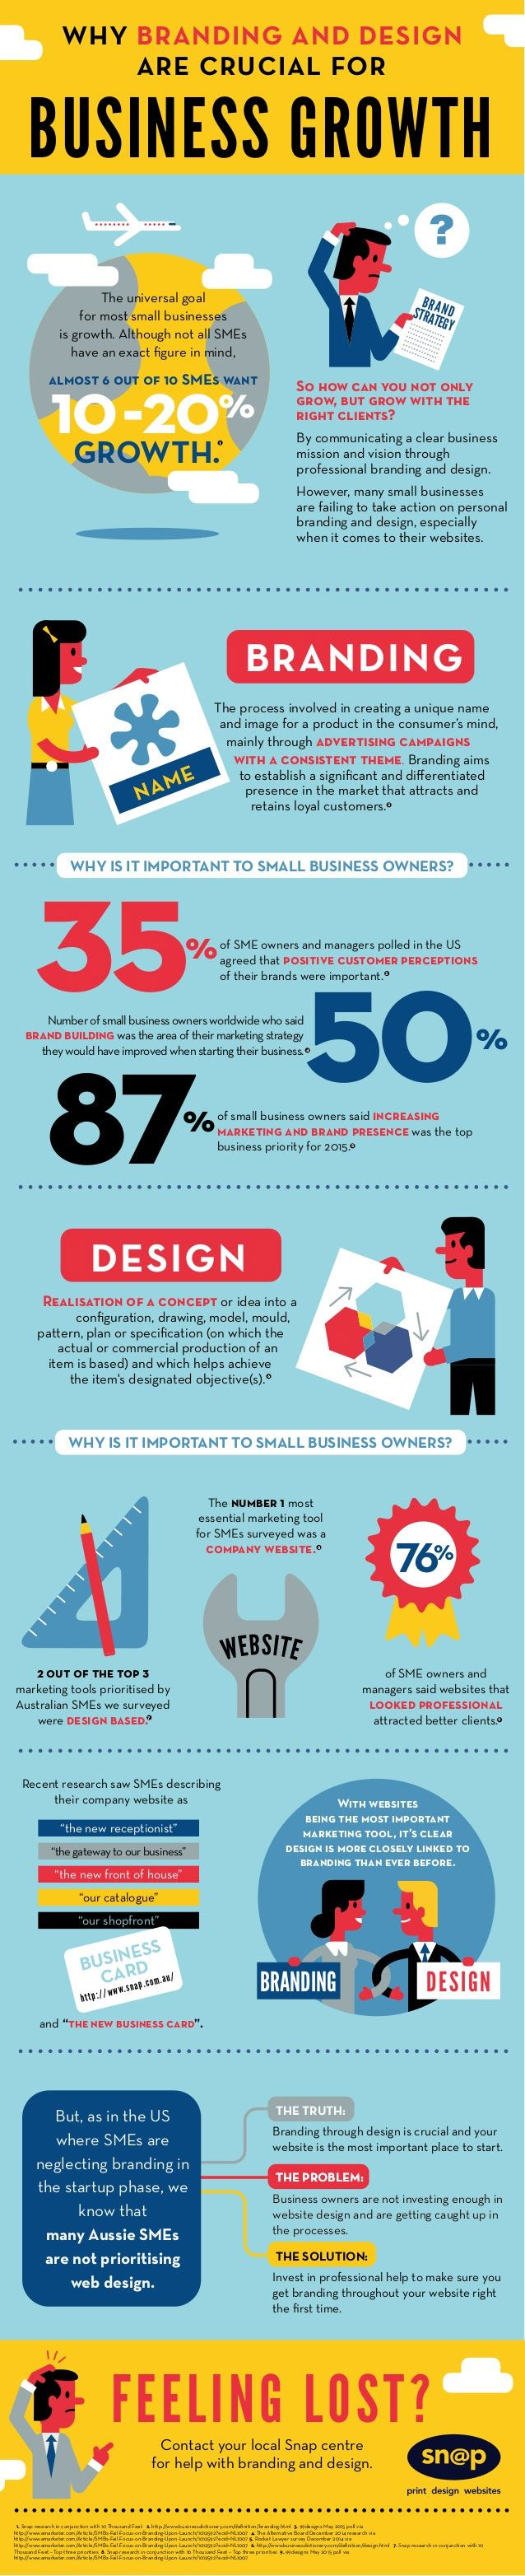 Why Branding & Design Are Crucial #infographic